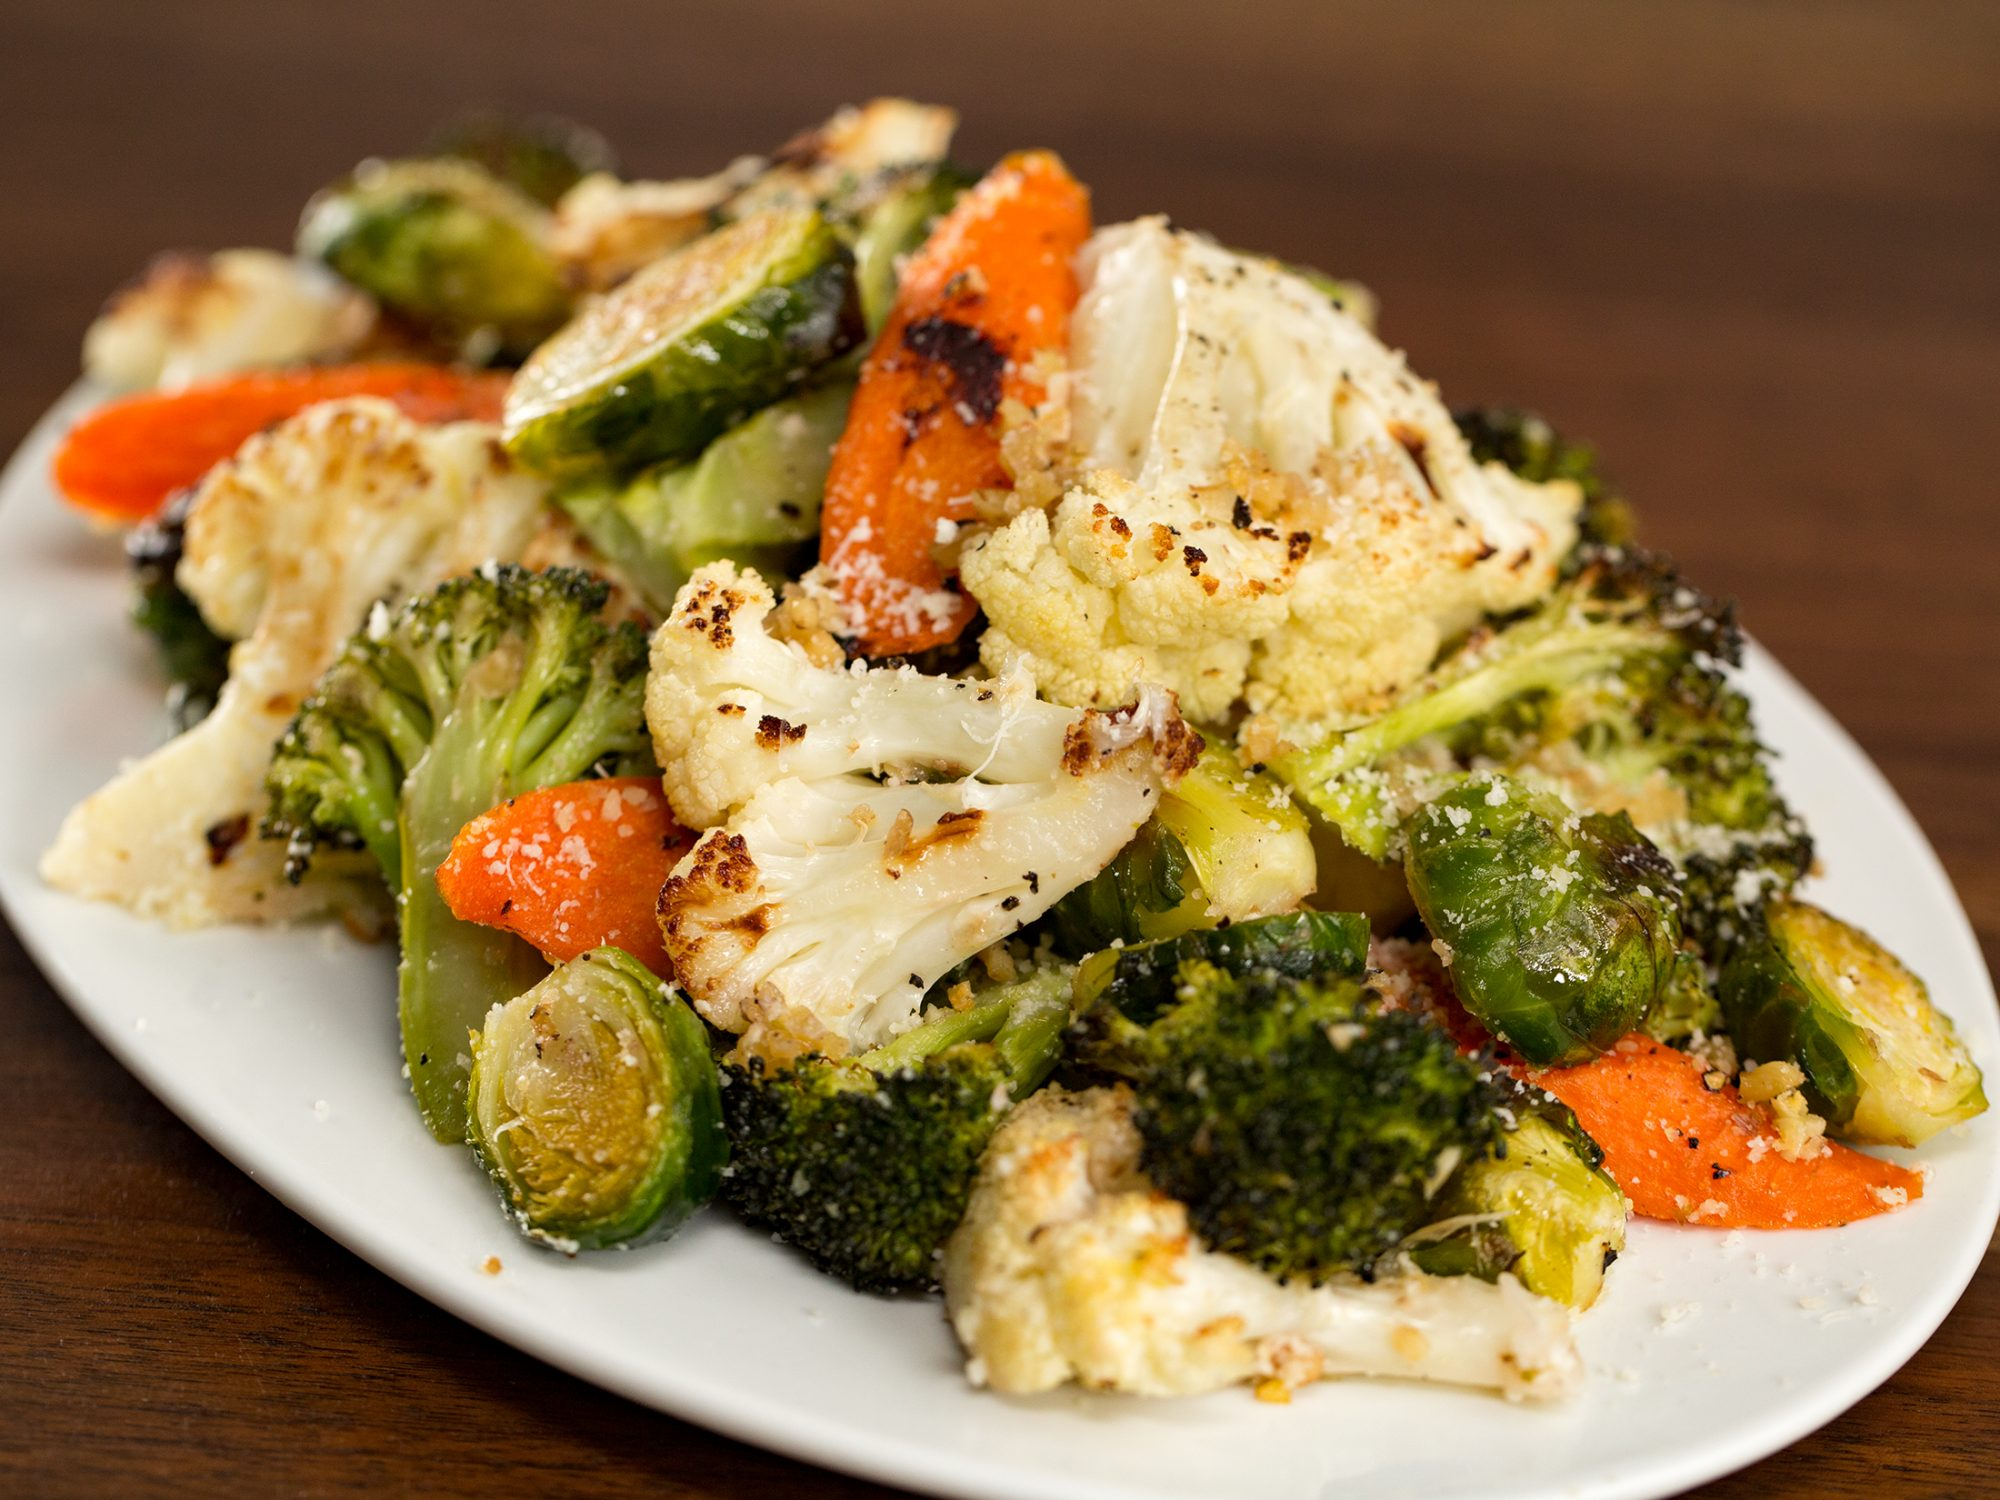 Best Roasted Veggies